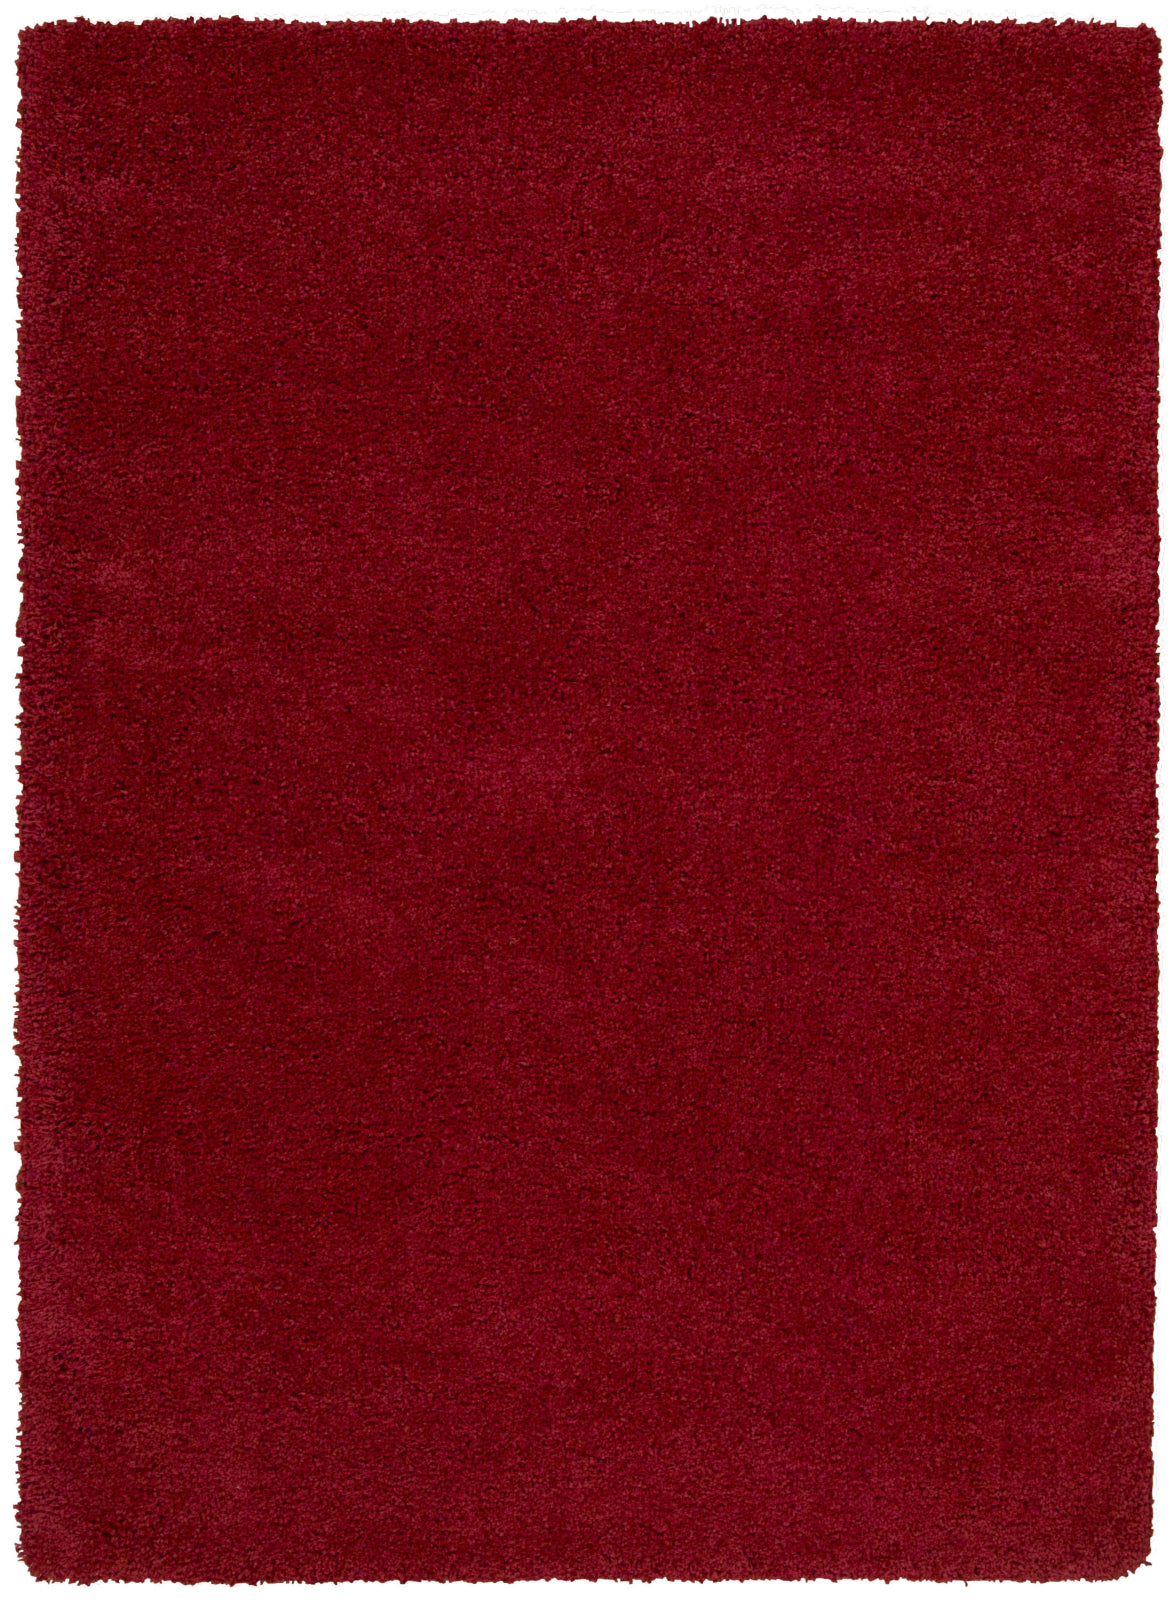 Nourison Amore AMOR1 Red Area Rug main image